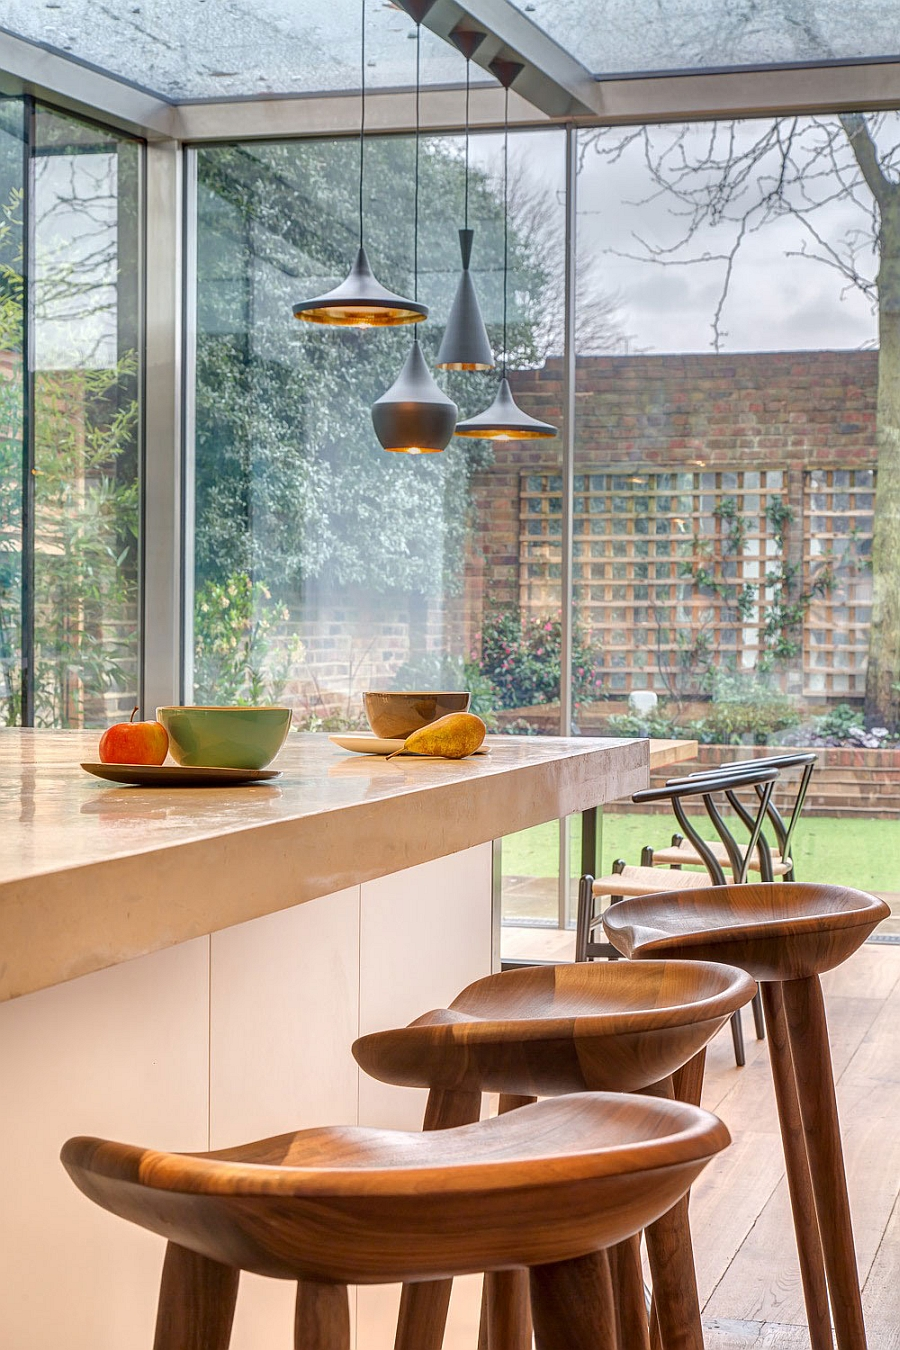 Kitchen and dining areas visually connected with the backyard